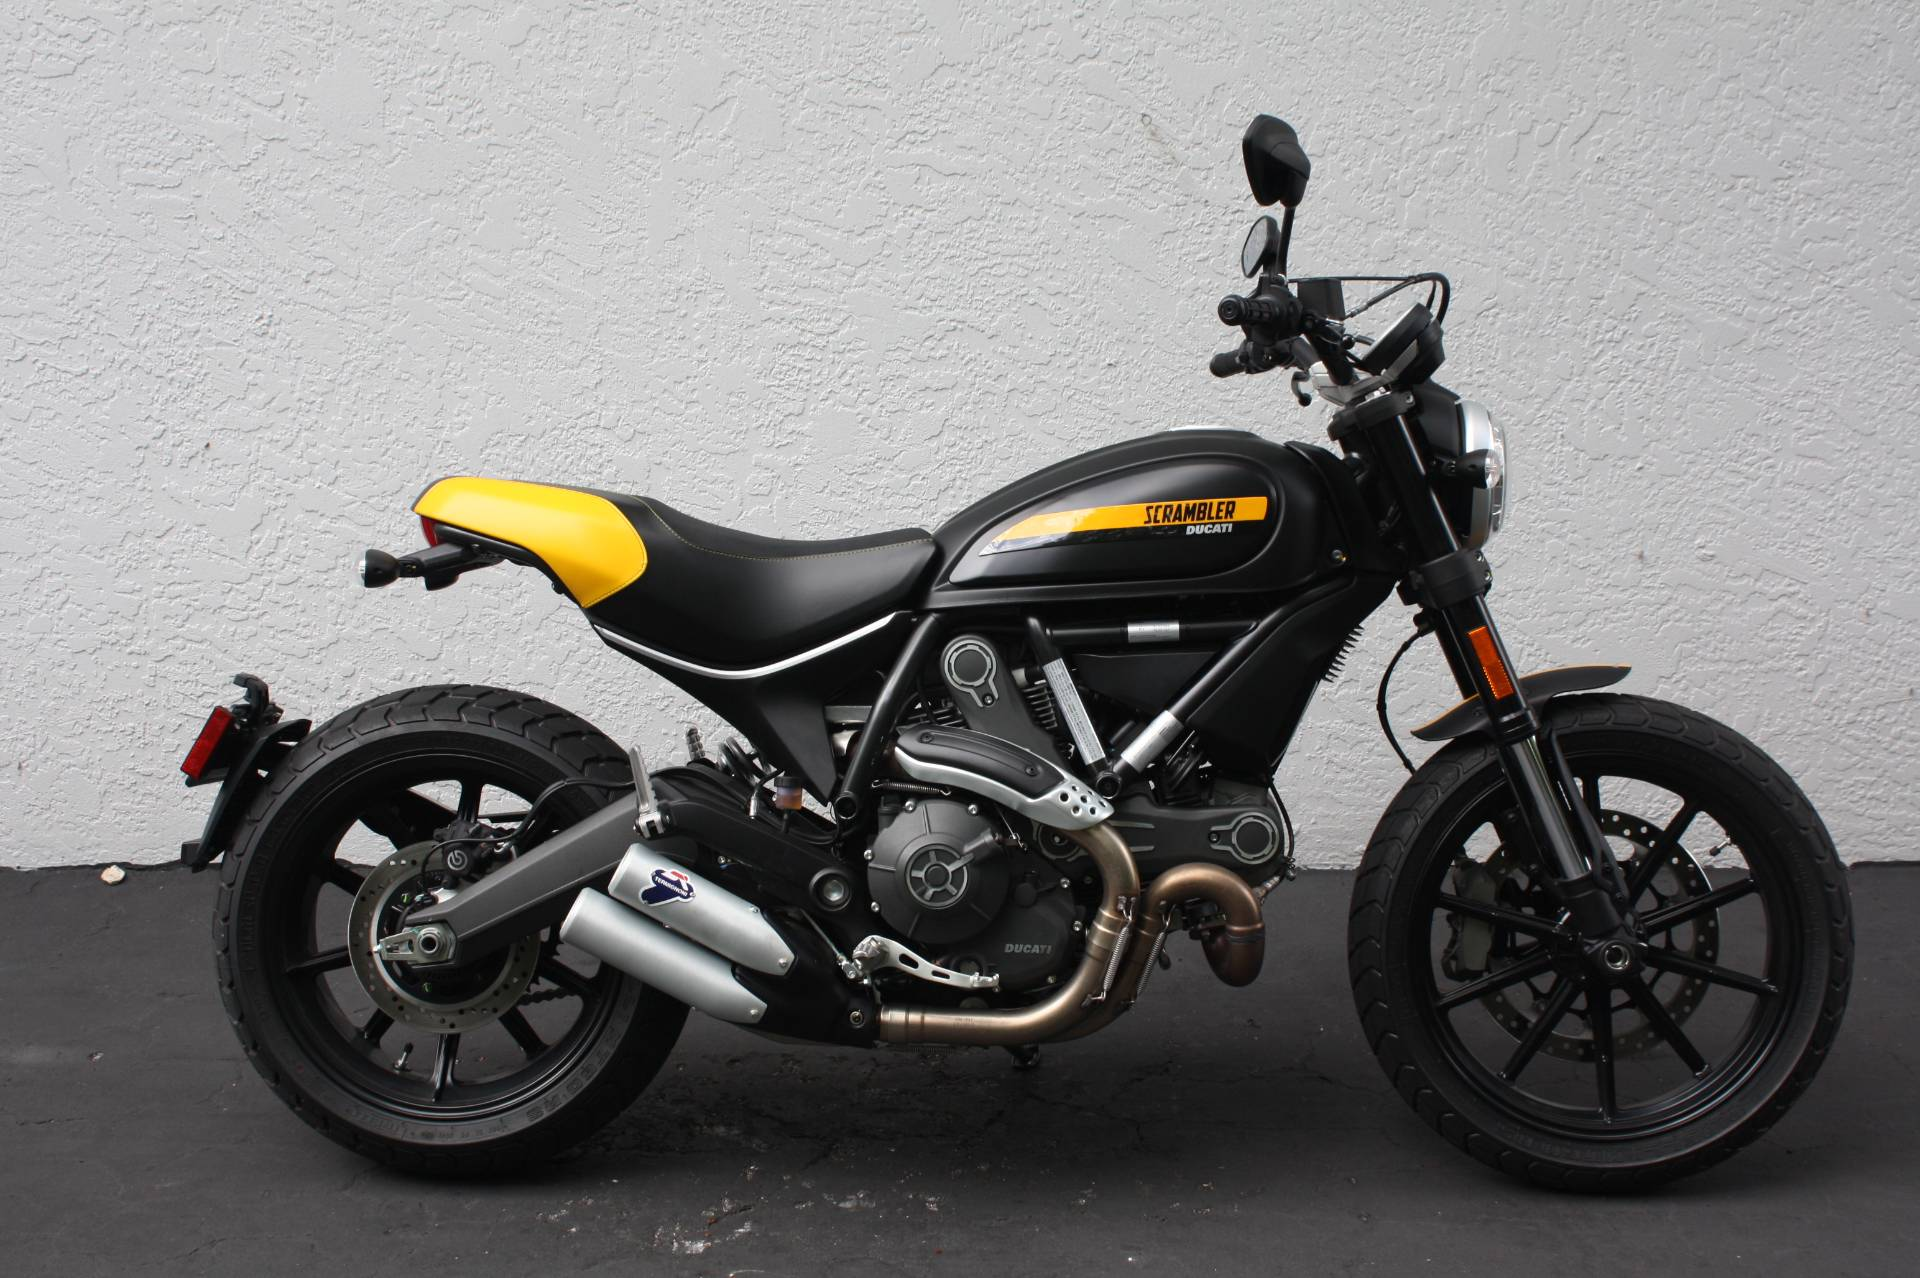 Ducati Scrambler For Sale Ny